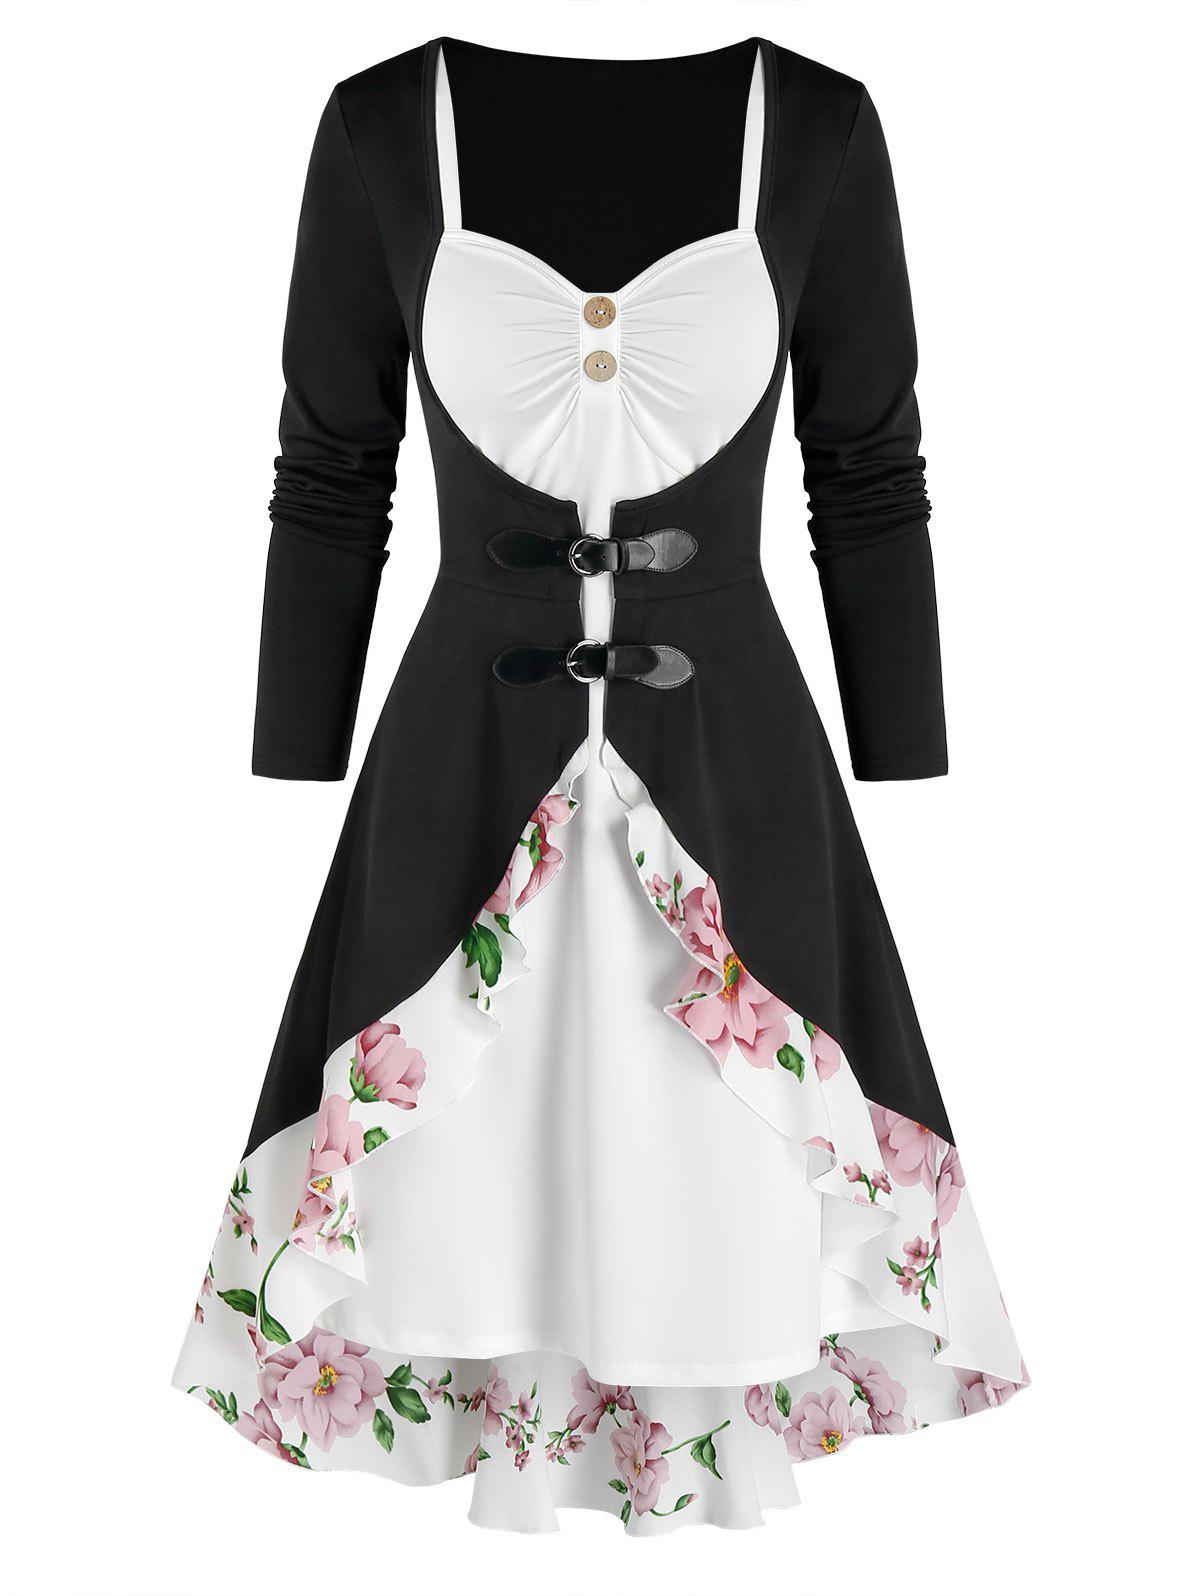 Chic Buckle Flounced Floral Cardigan and Dress Set